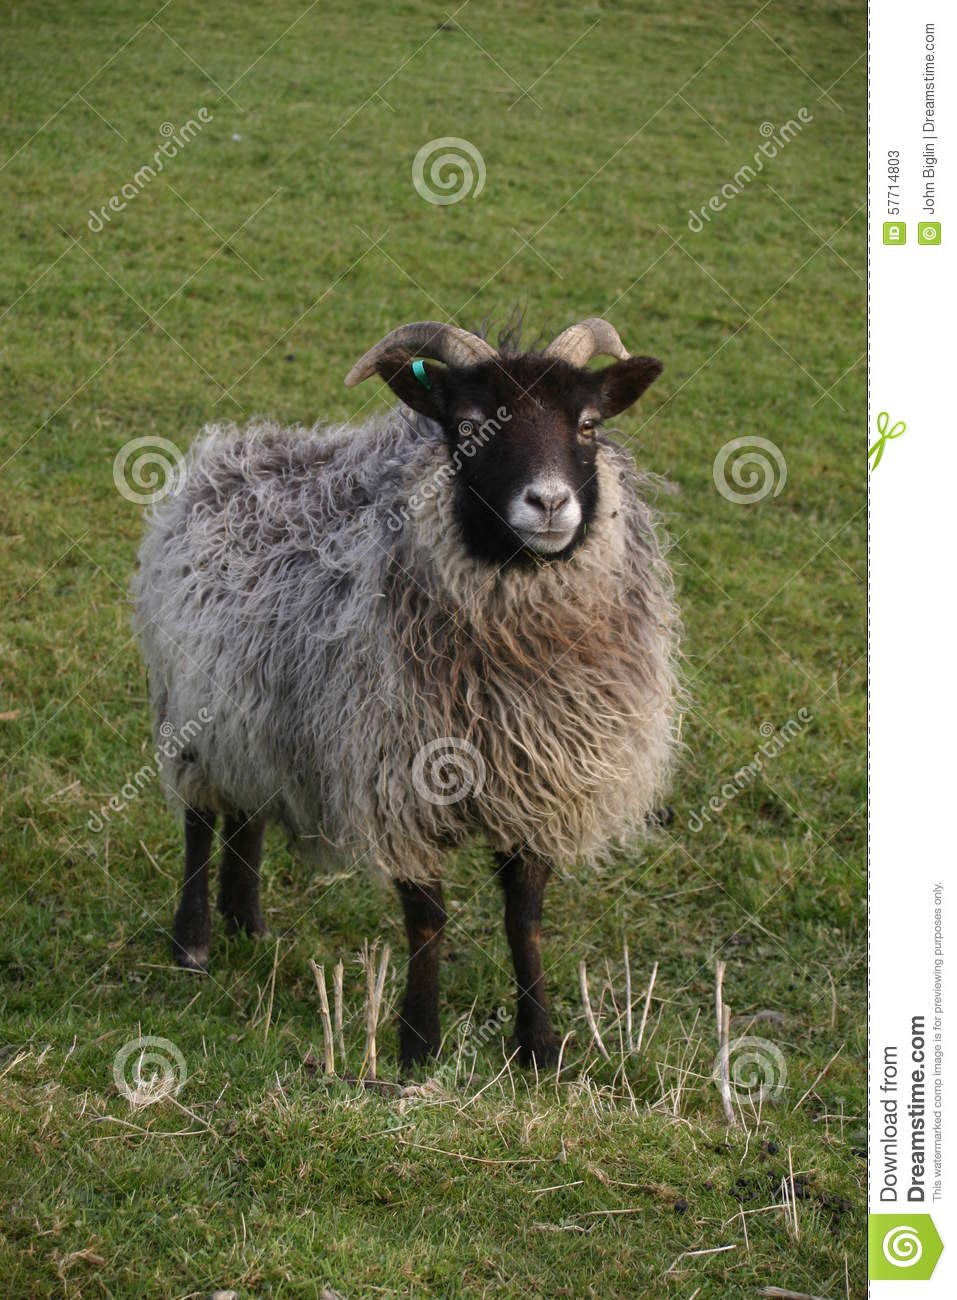 Horned sheep with black head